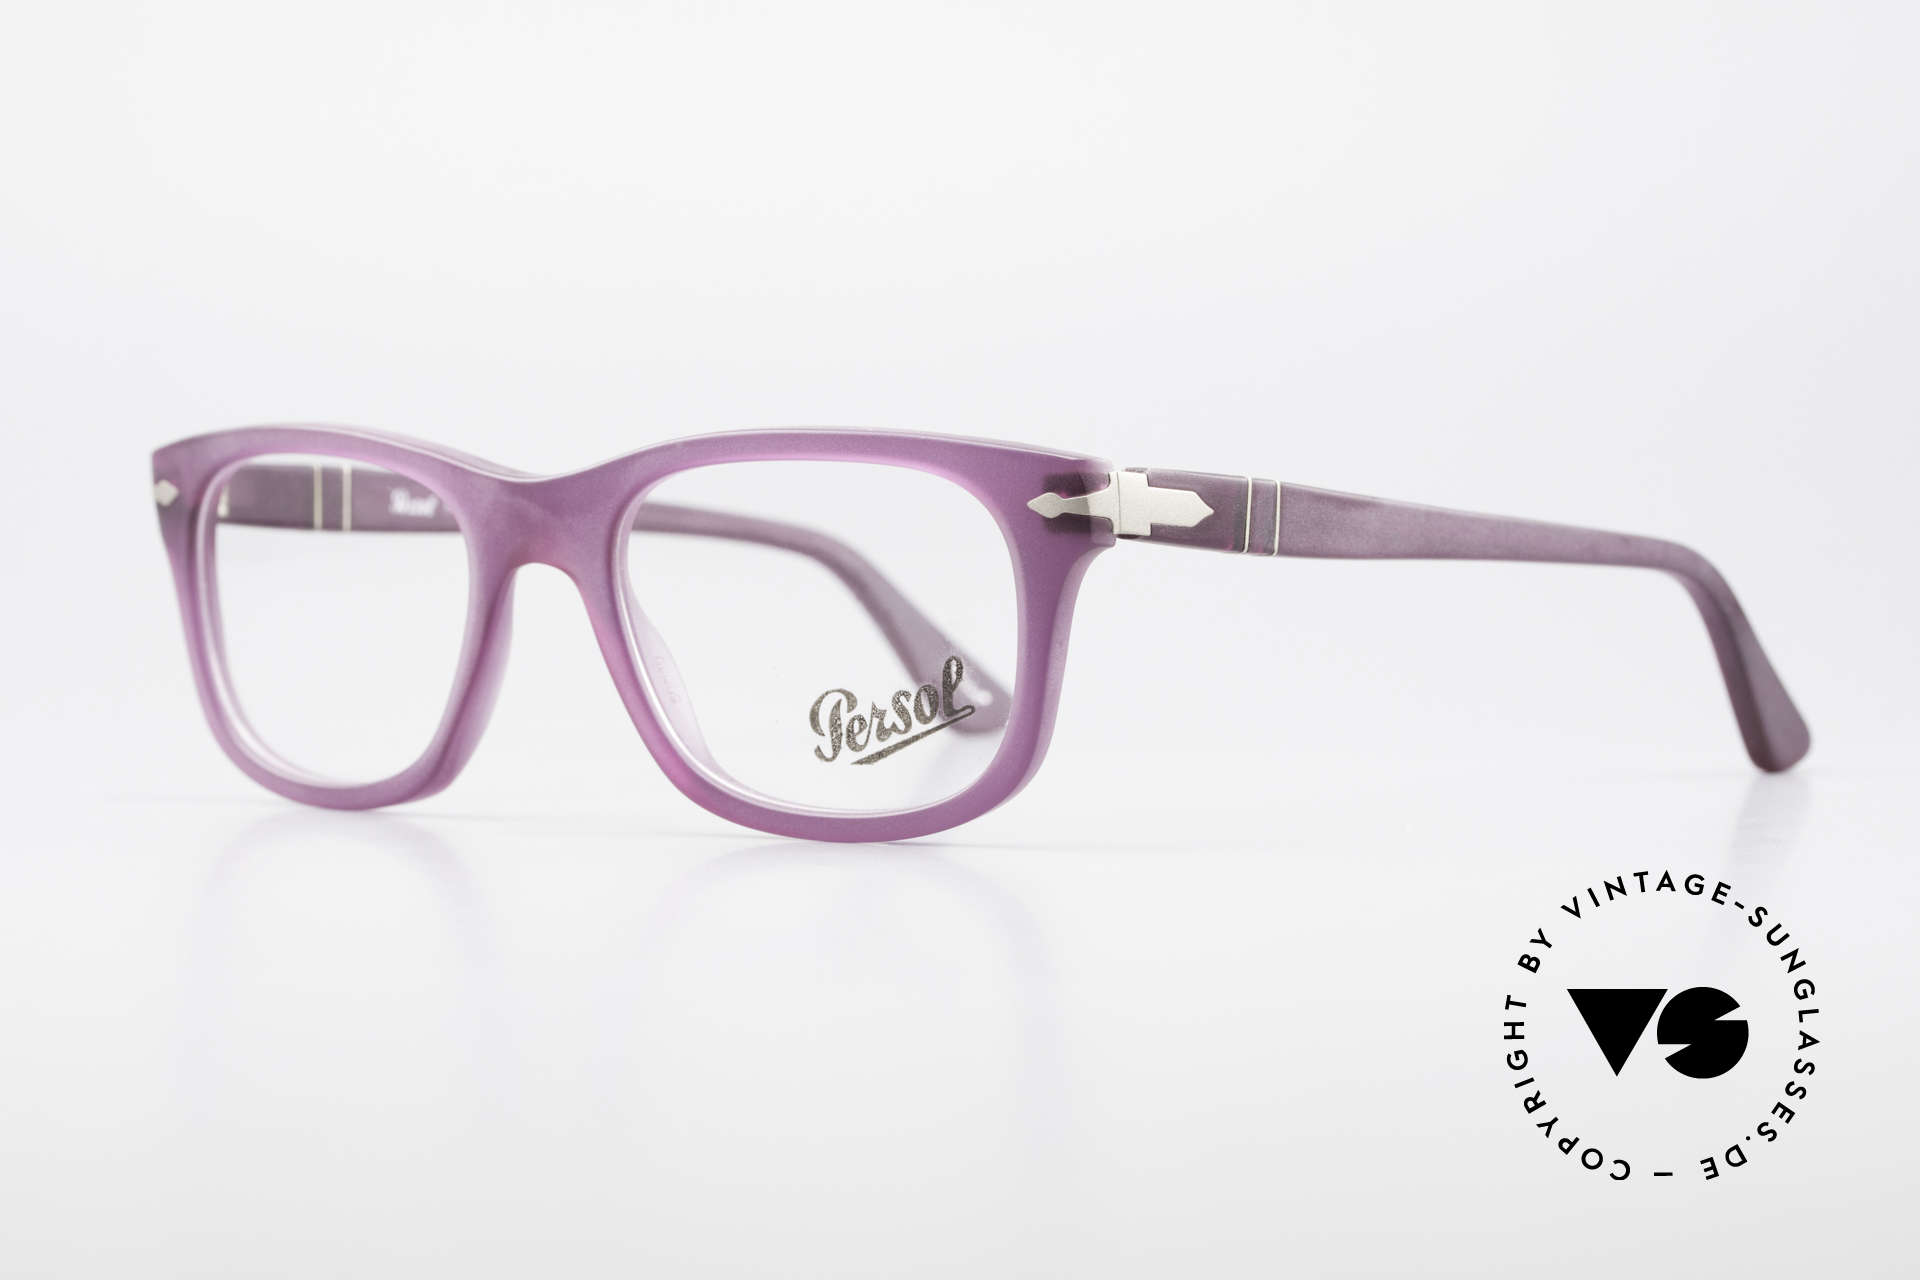 Persol 3029 Ladies Glasses Purple Violet, unworn (like all our classic PERSOL eyeglasses), Made for Women